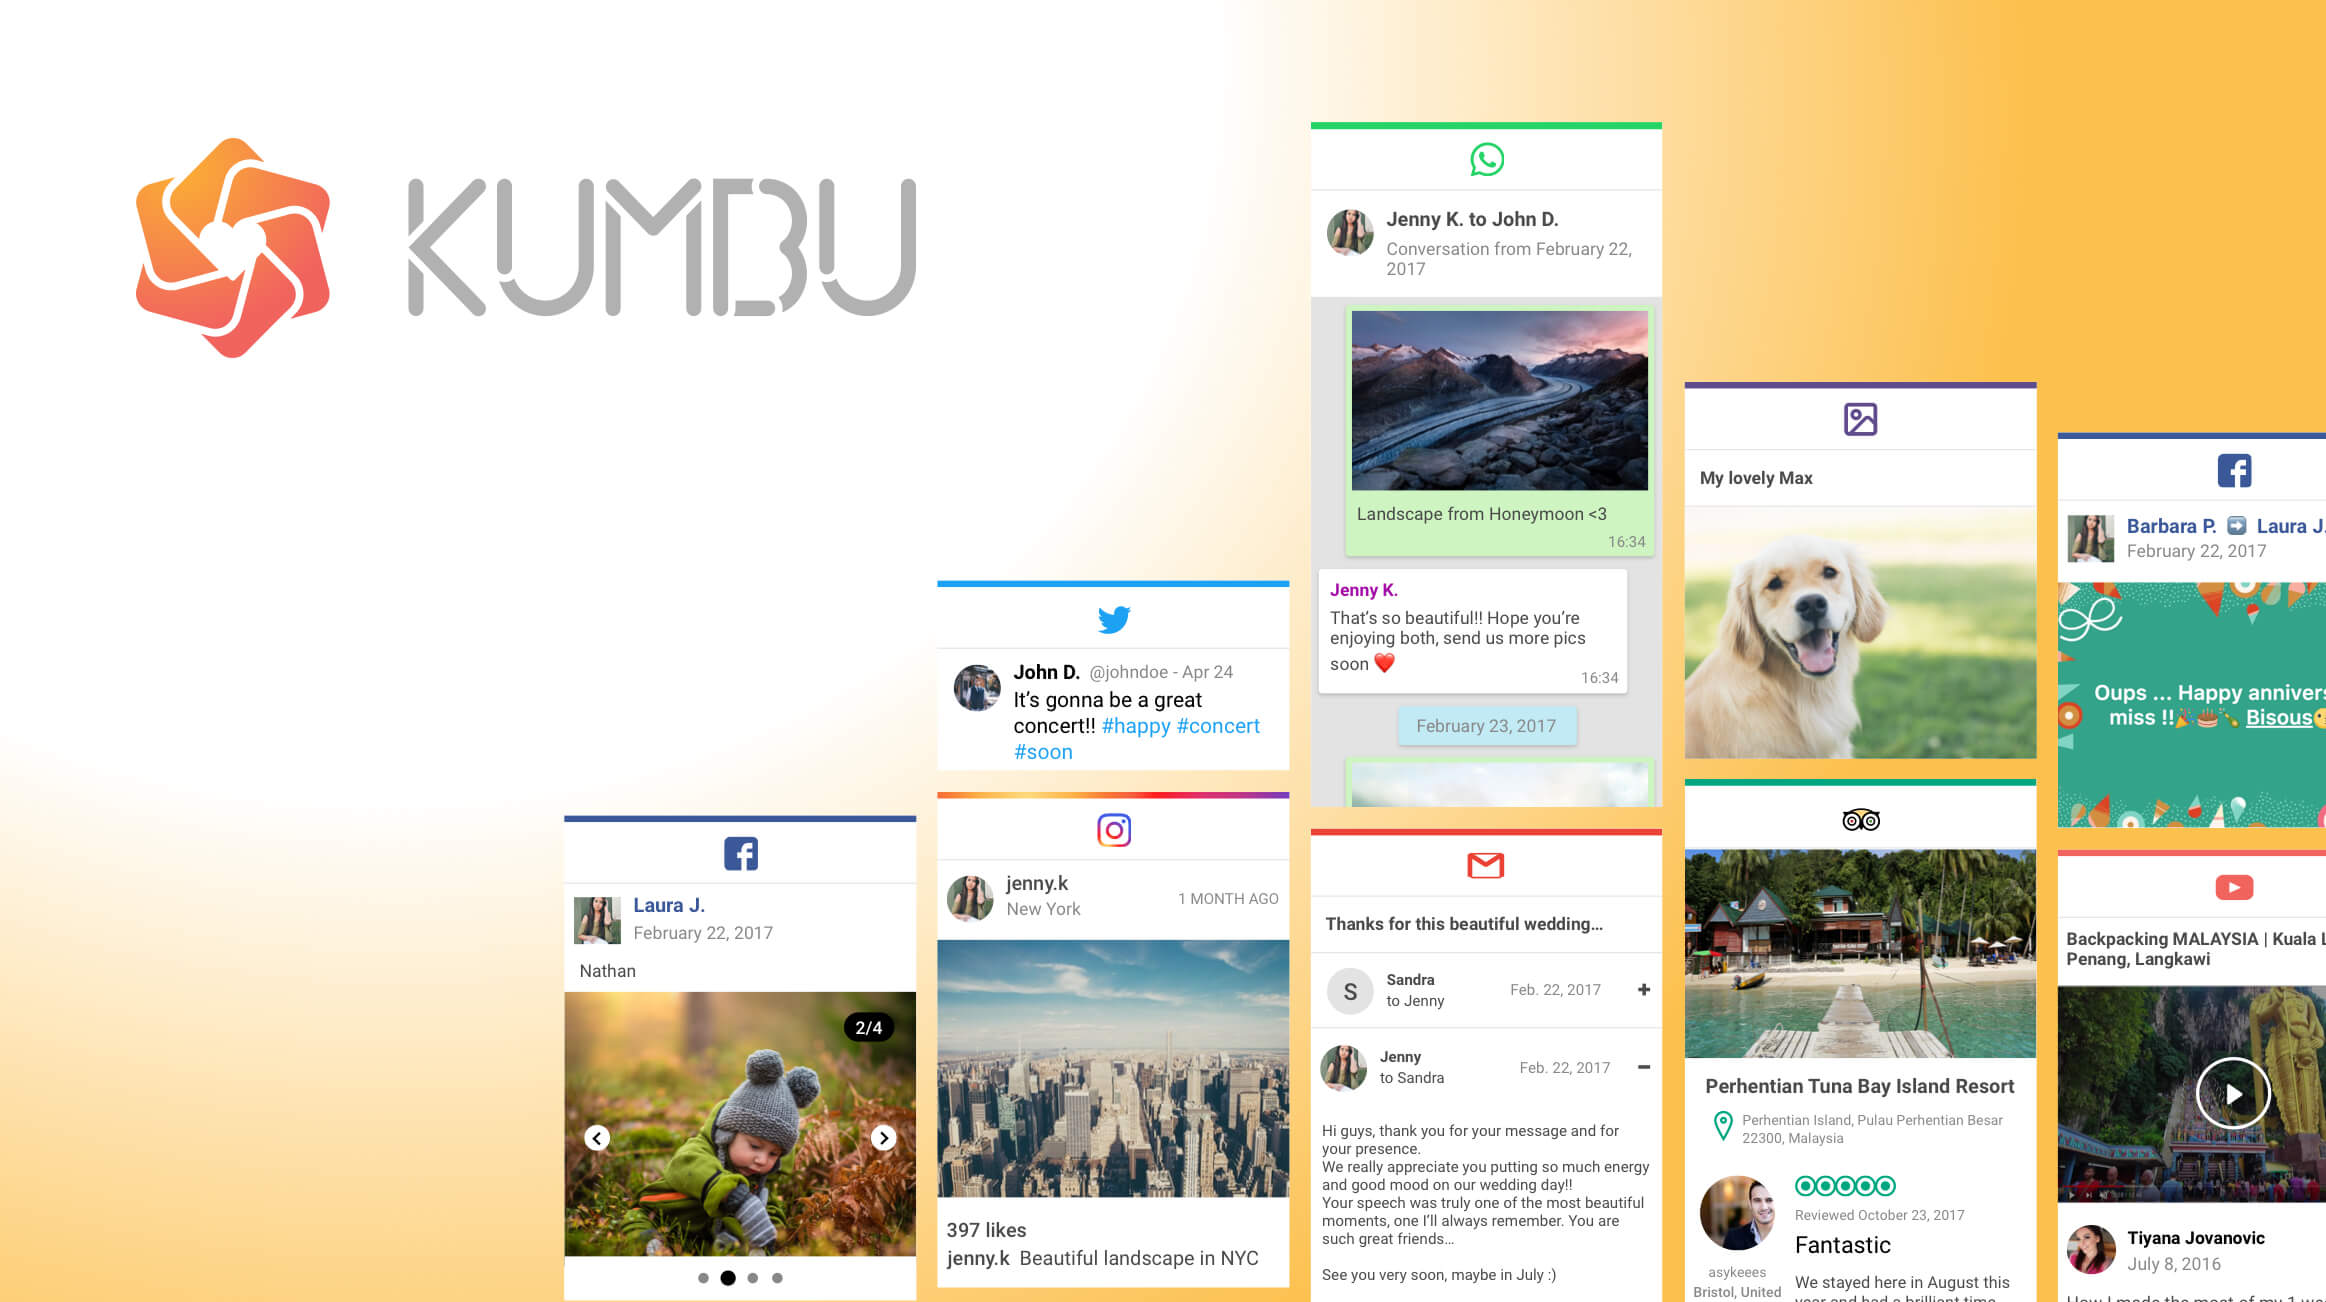 Kumbu helps you save social media memories